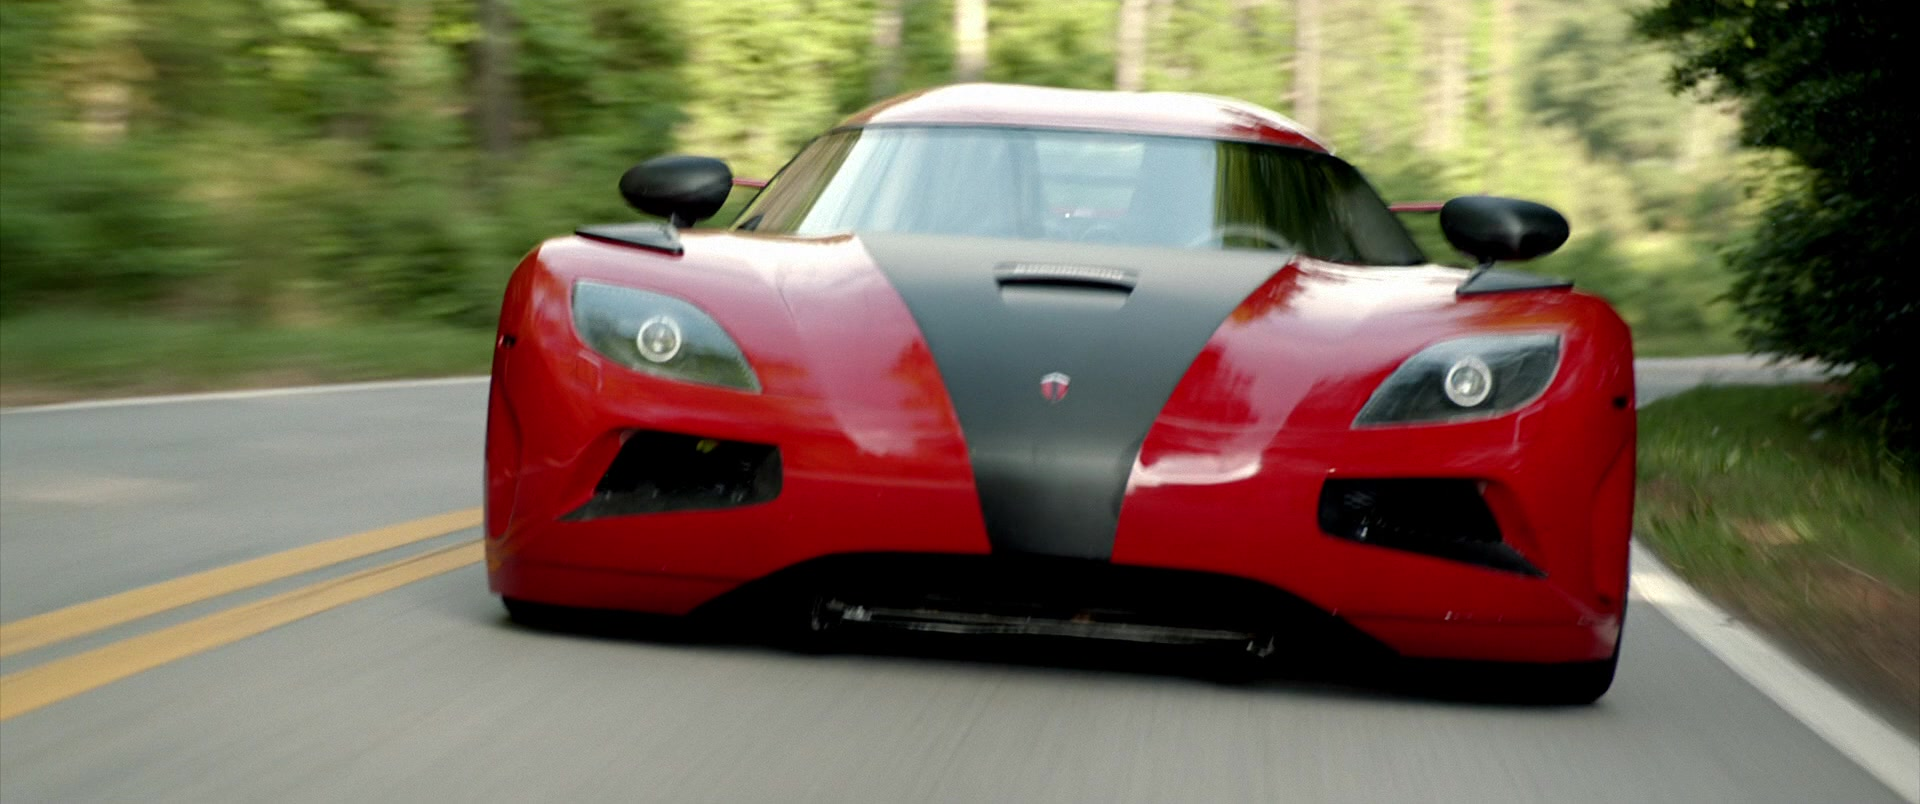 Koenigsegg Agera R Red Sports Car Driven By Dominic Cooper In Need